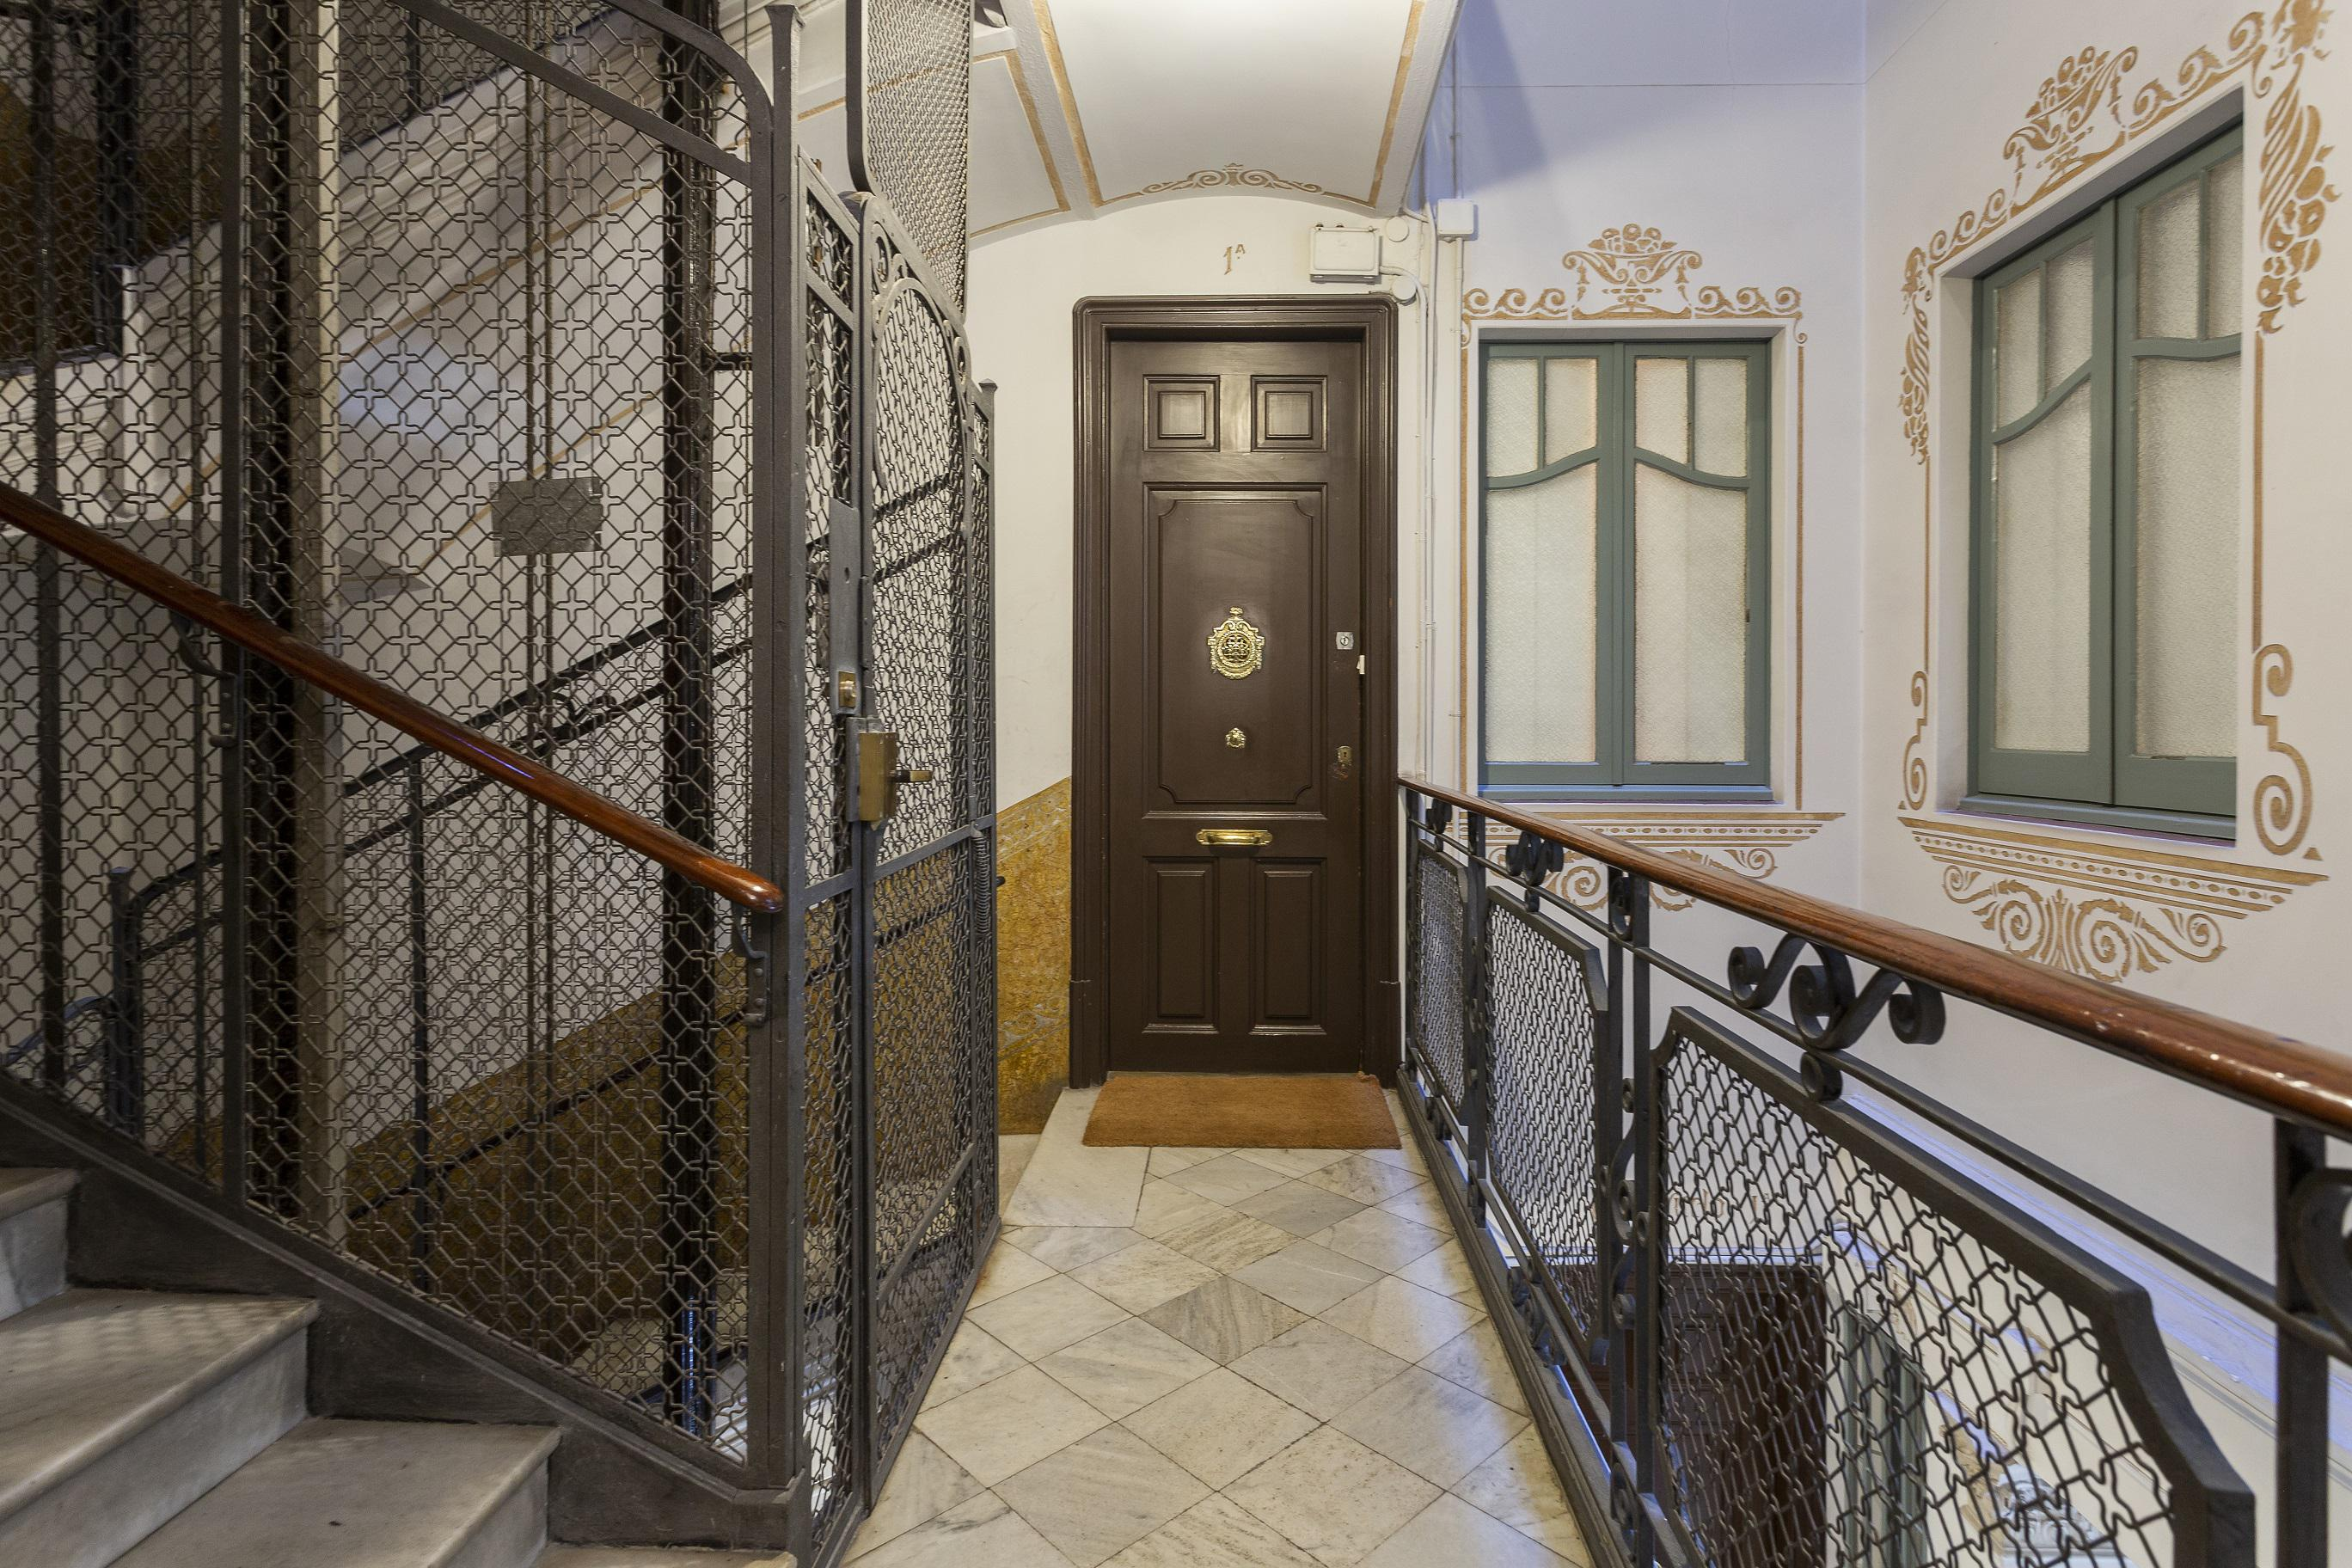 236190 Apartment for sale in Eixample, Old Left Eixample 29